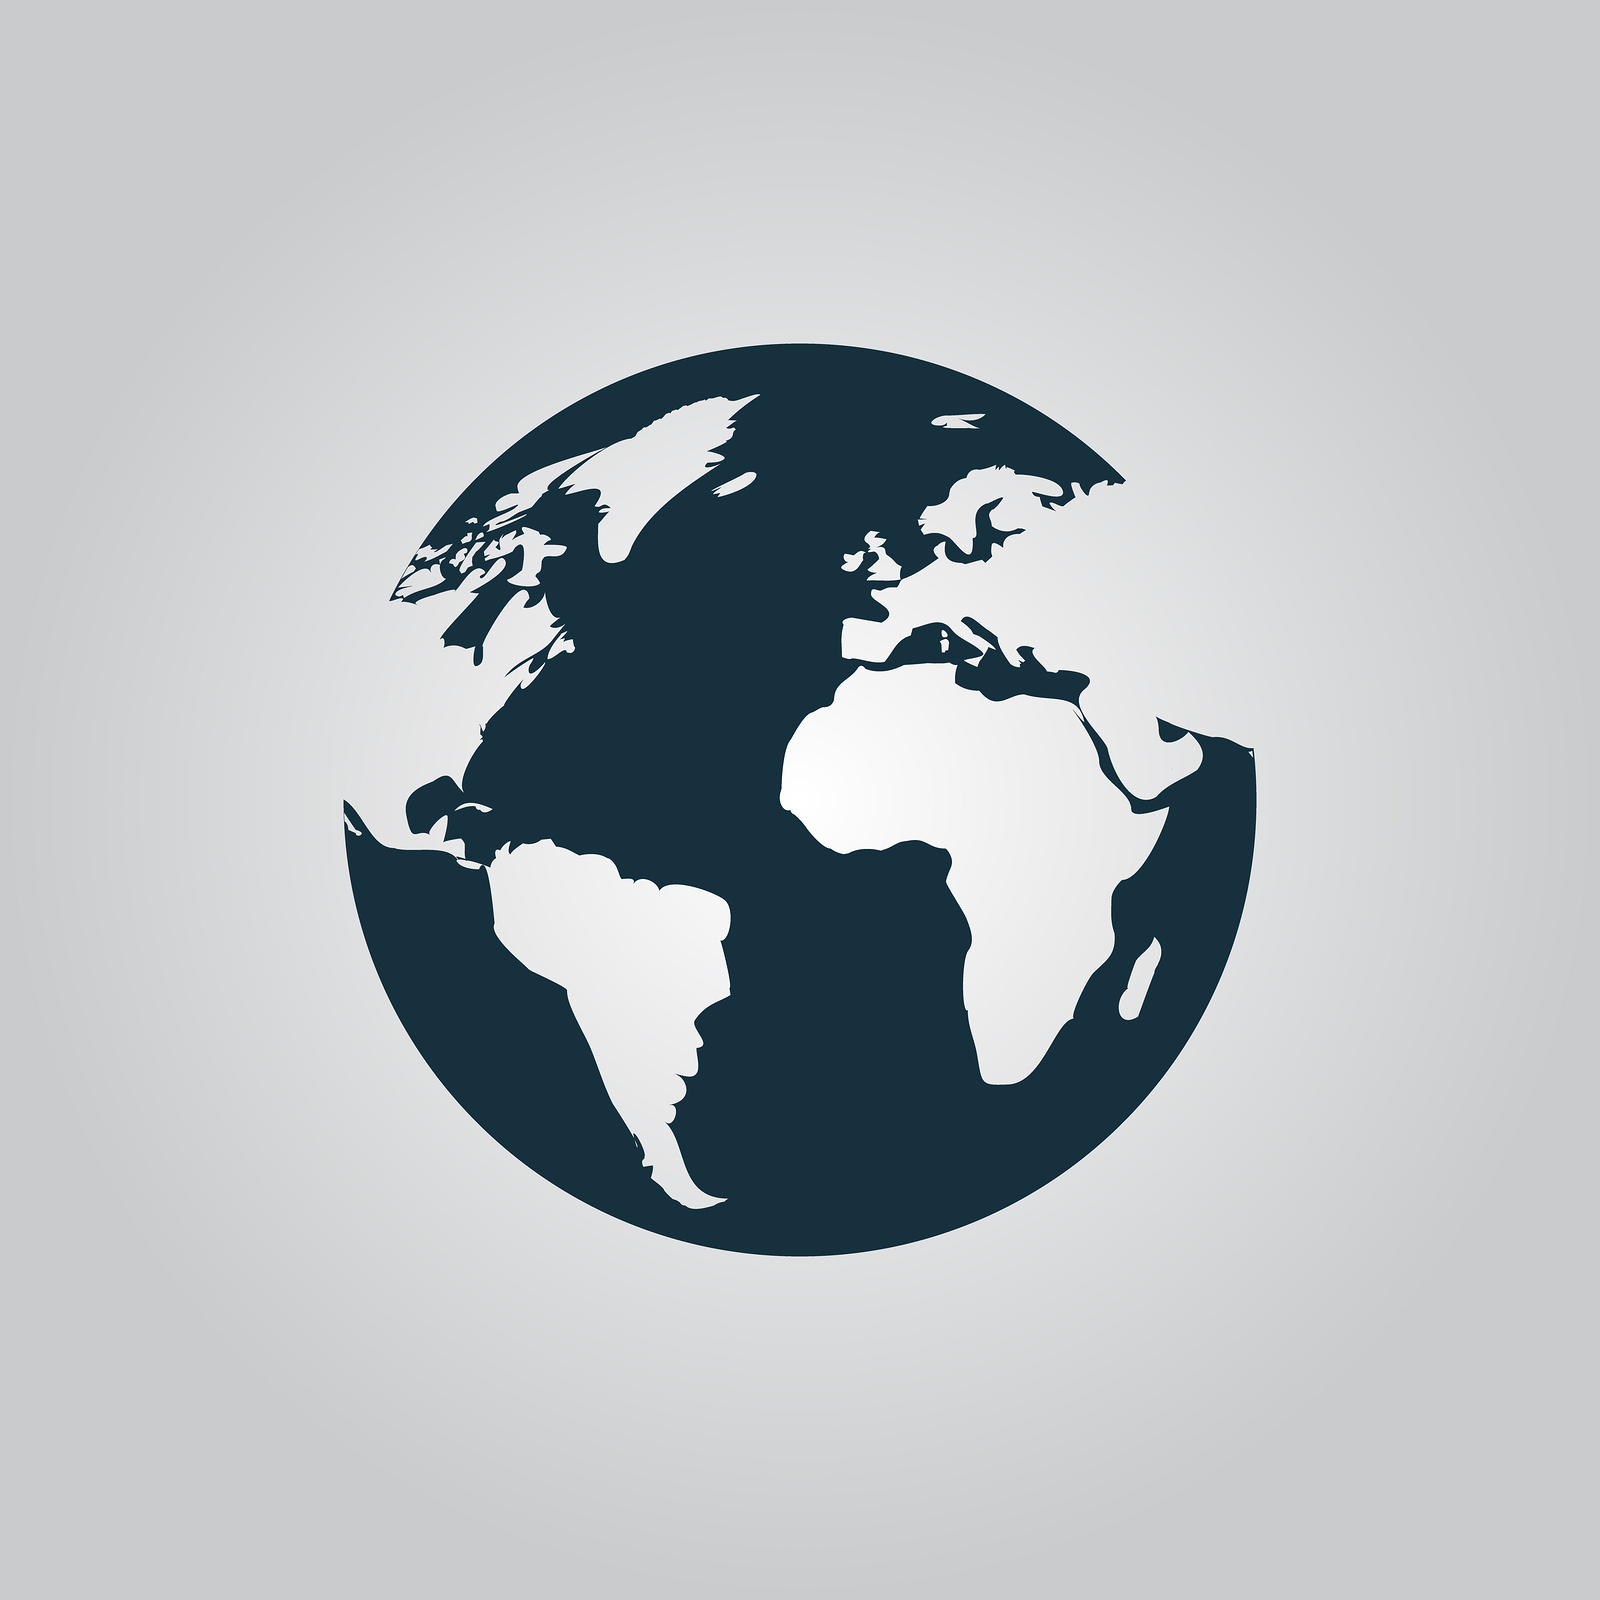 1600x1600 Globe Earth Vector Icons On Grey Background.